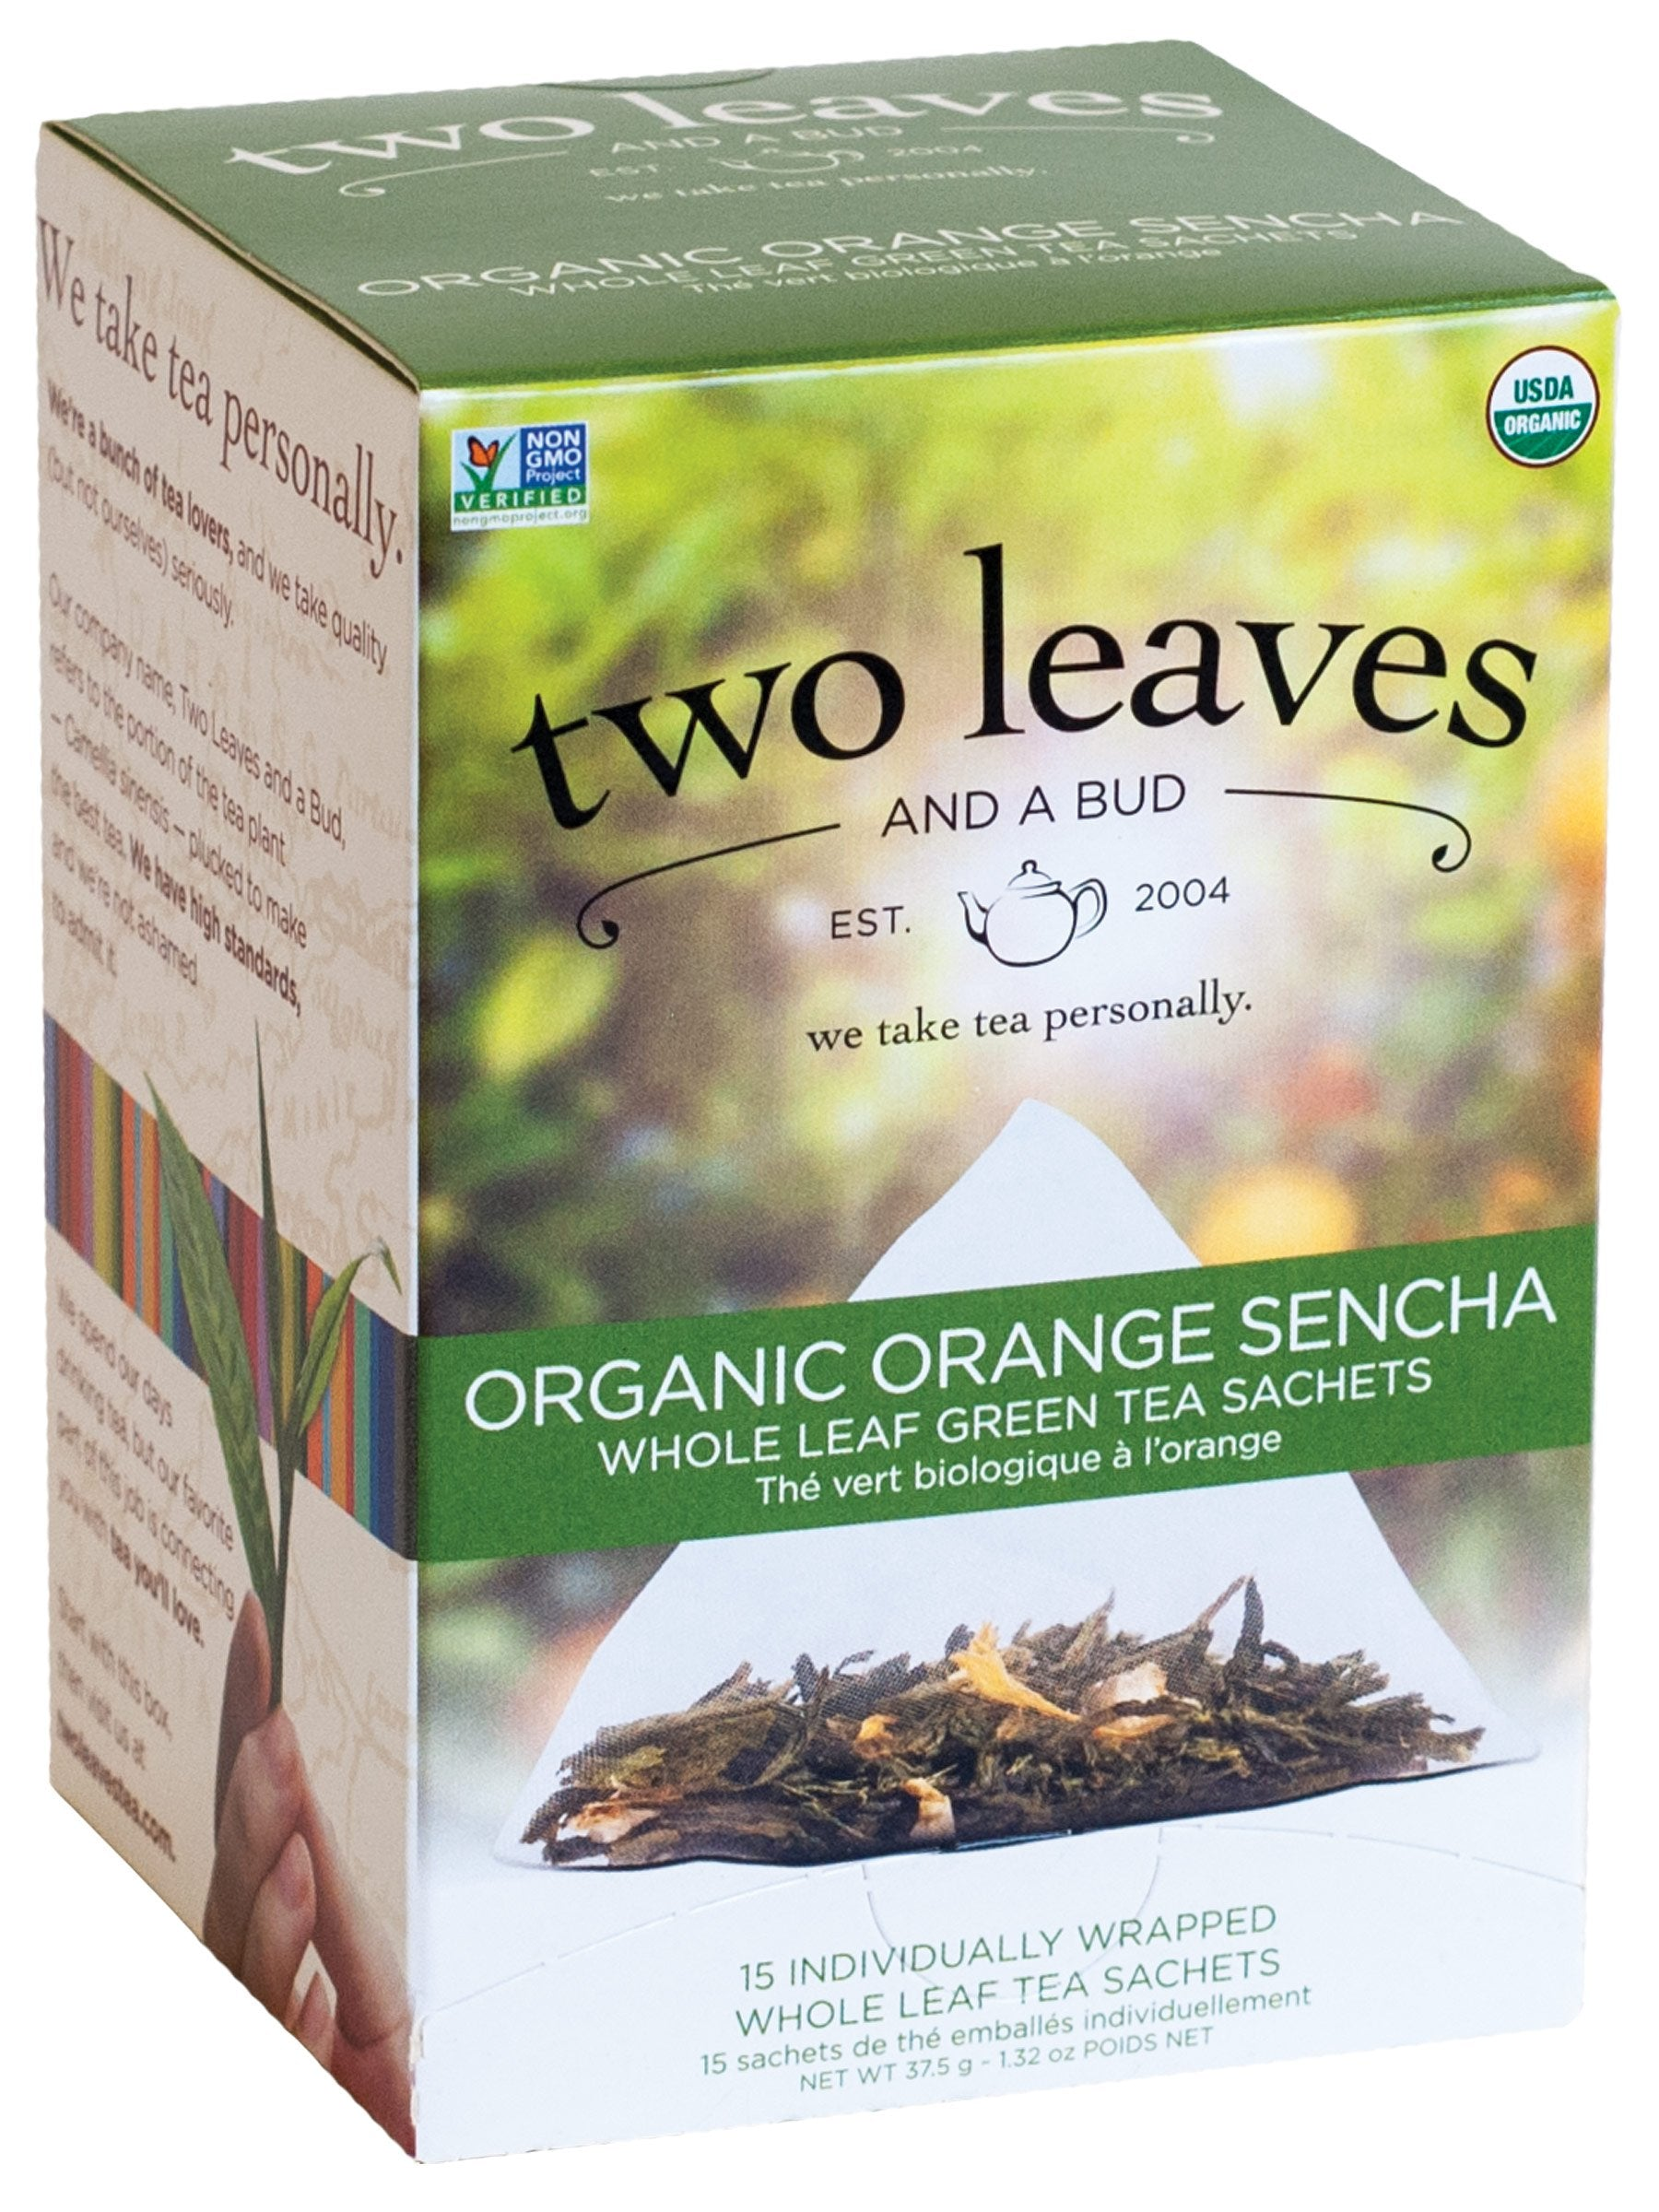 Orange Sencha - 15 sachets/box